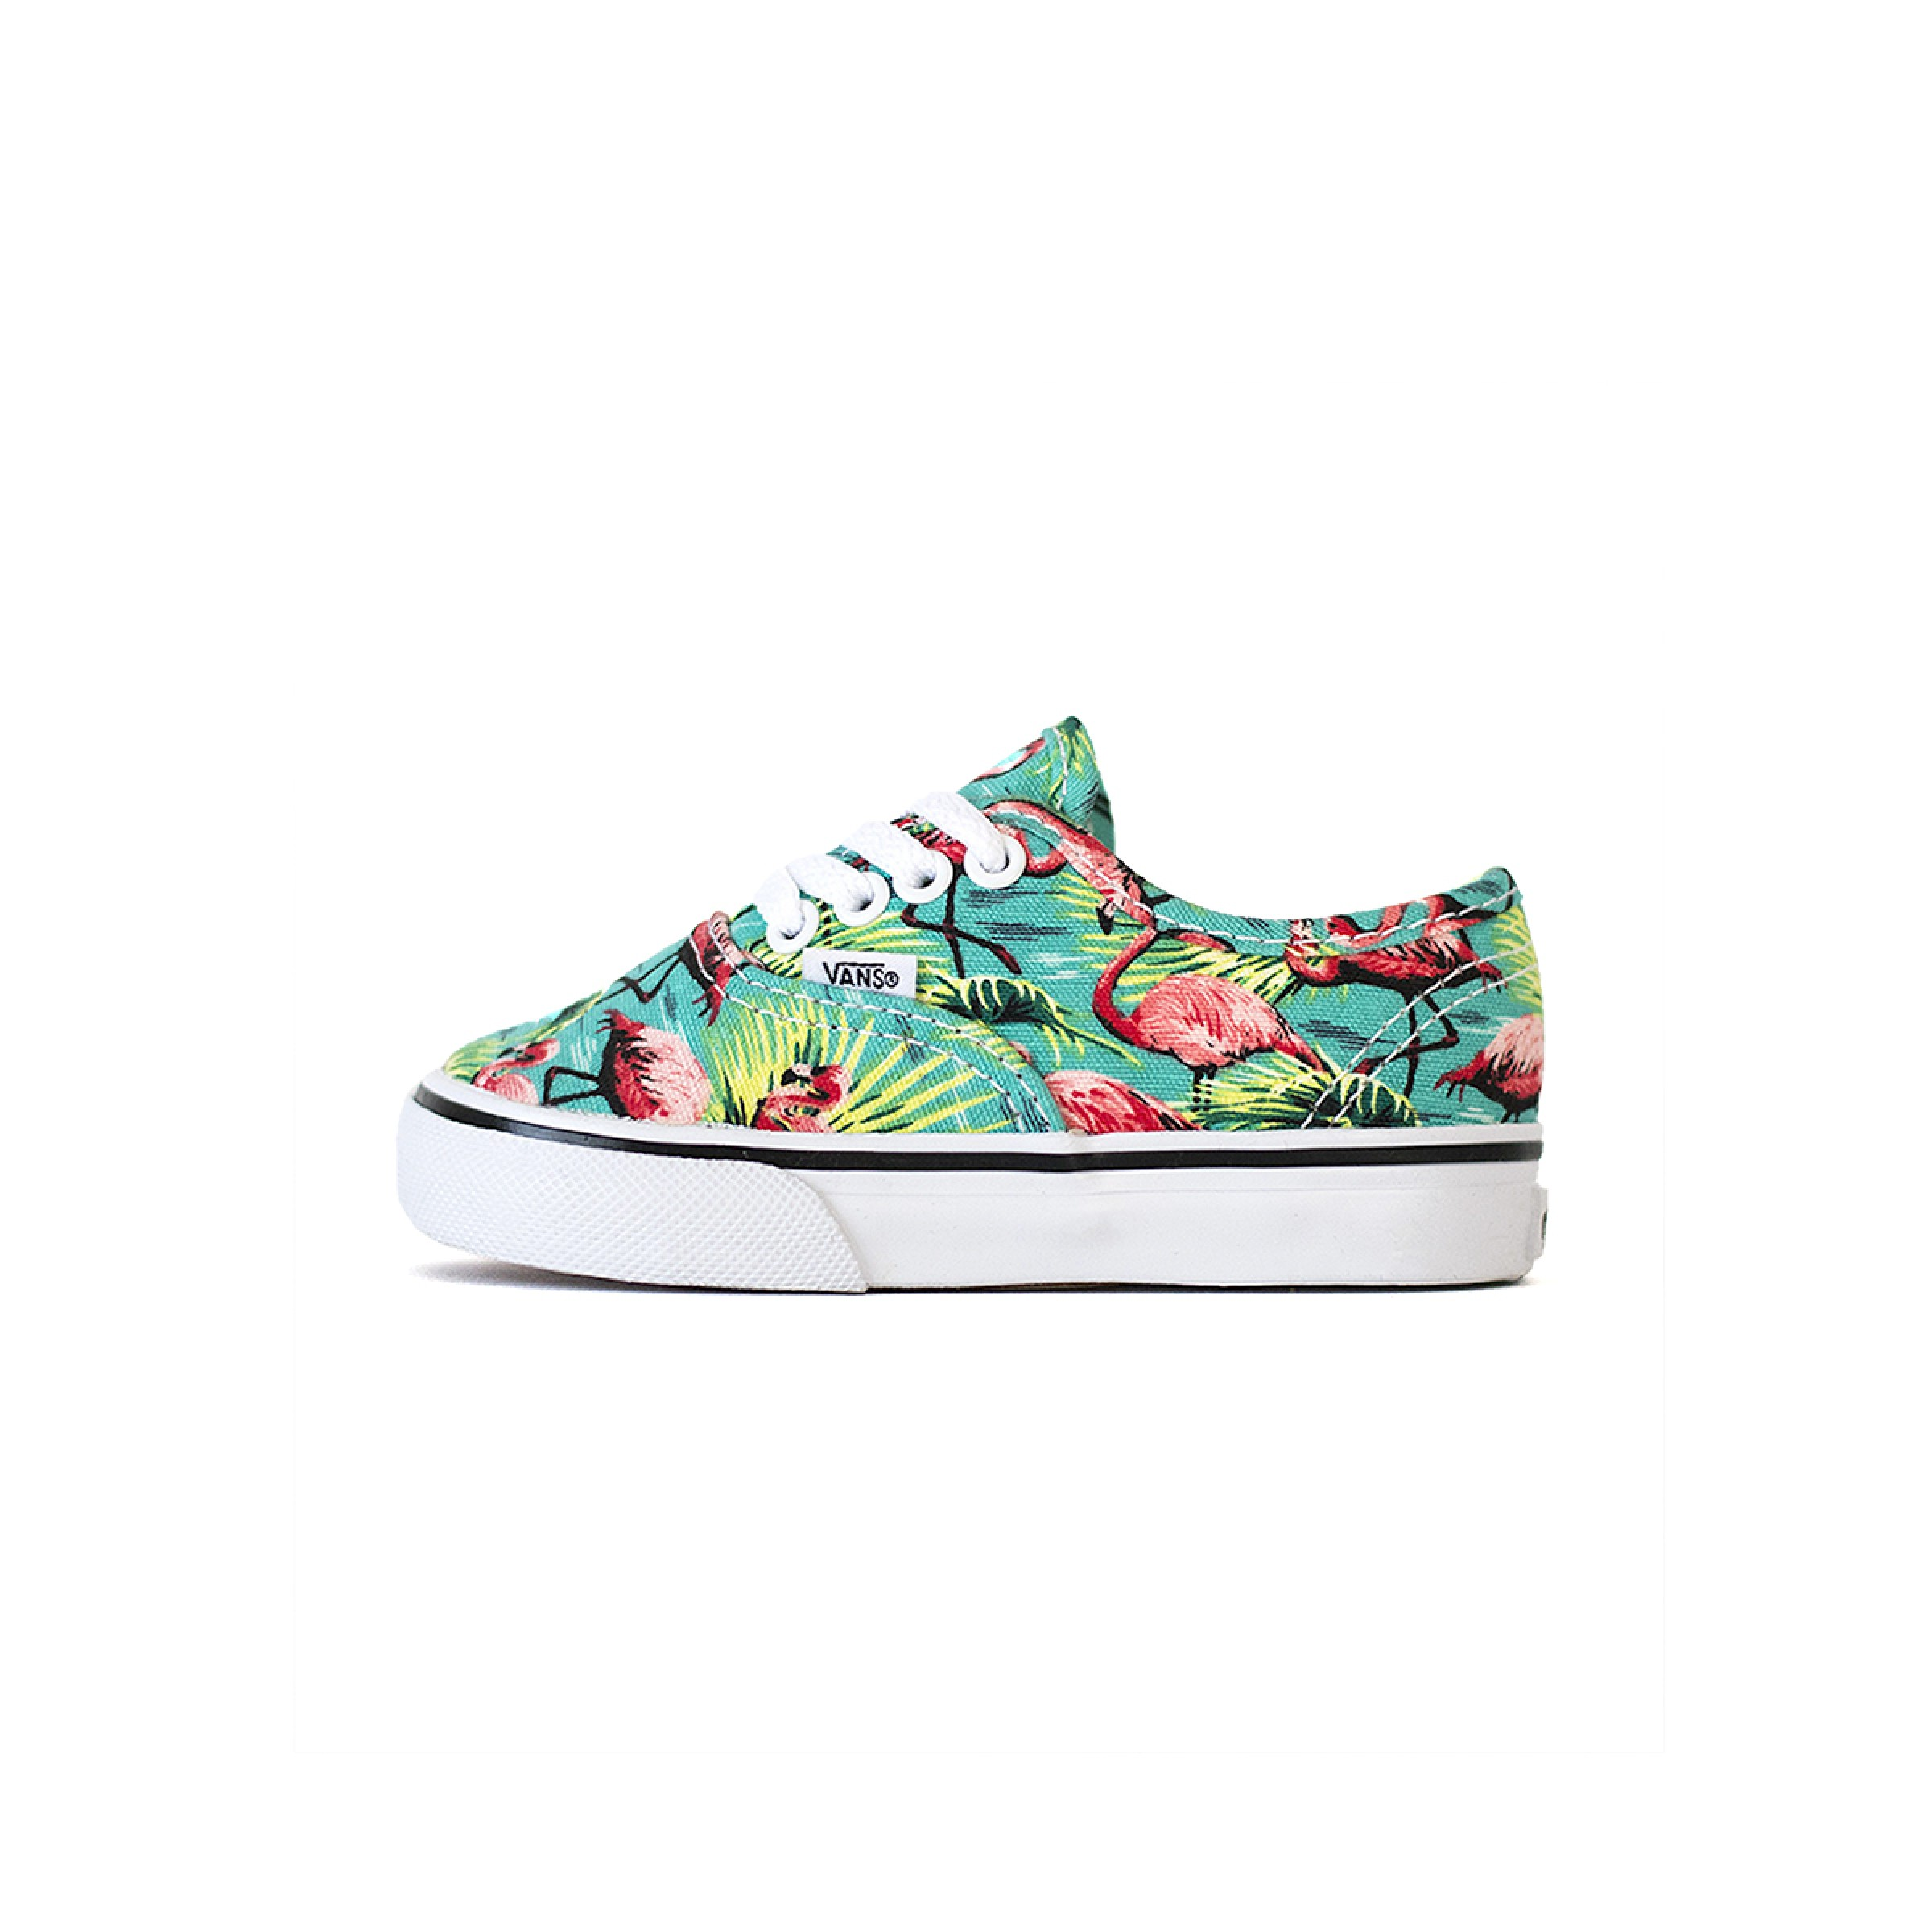 Flamingo Vans | Maroon Vans Shoes | Cool Vans Shoes for Guys